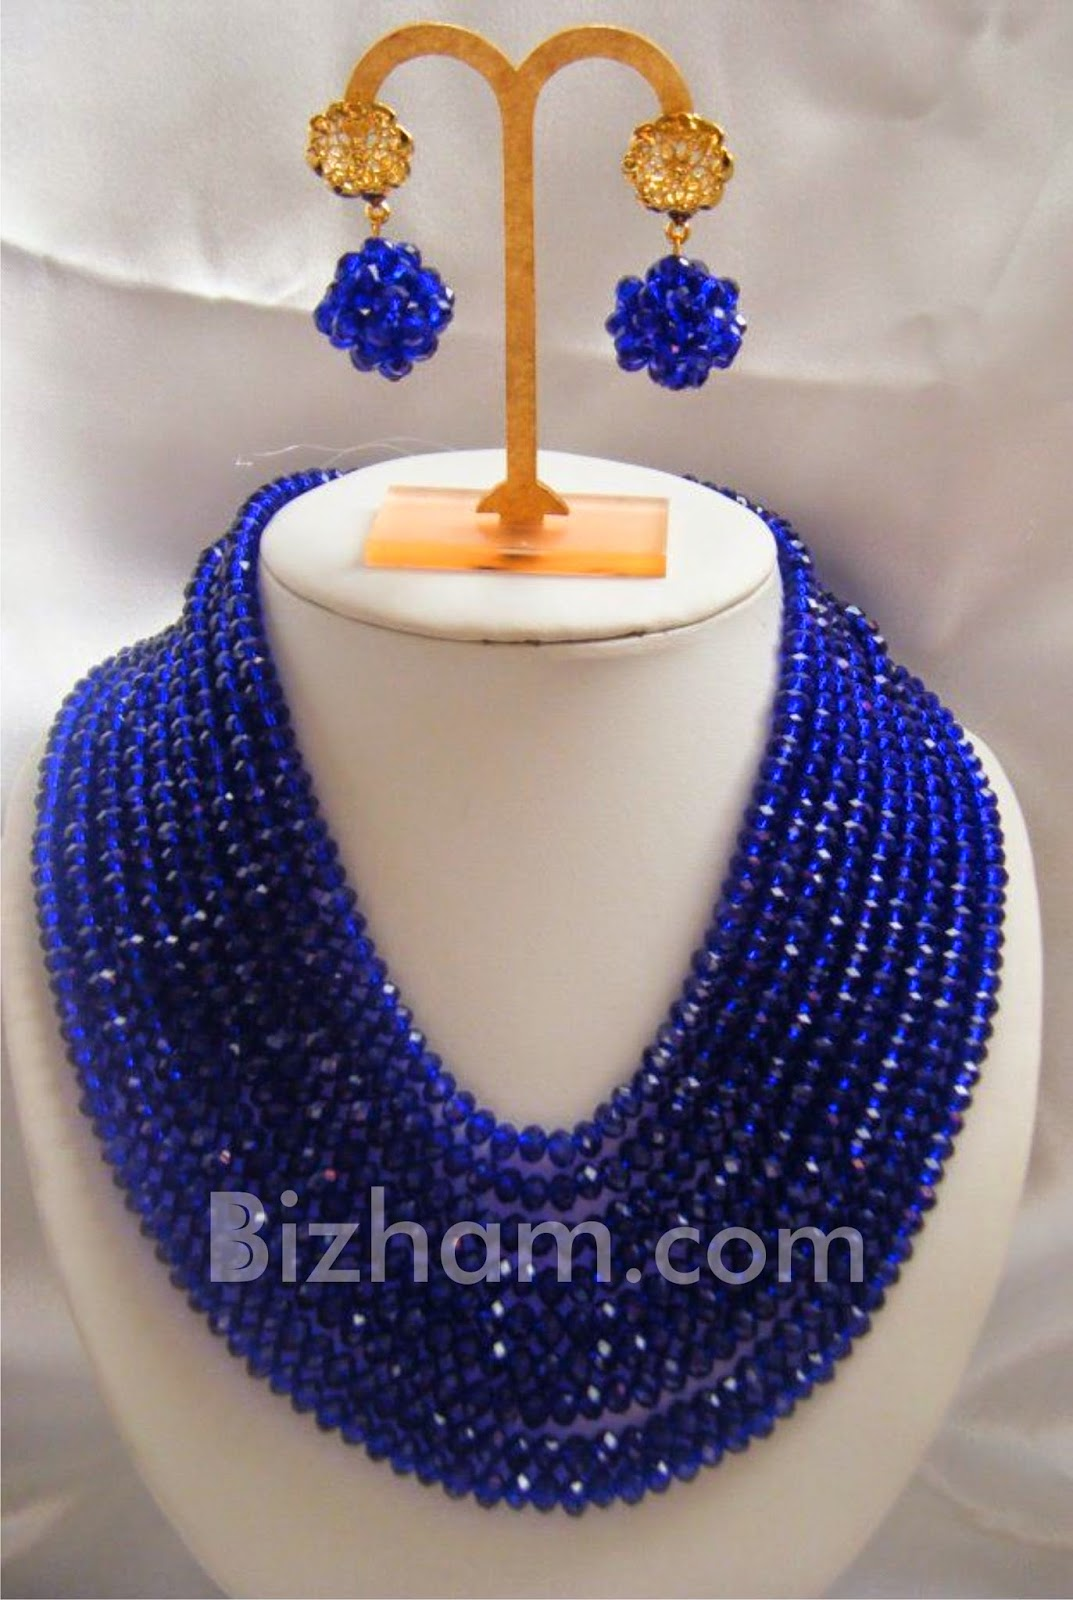 Start Bead-Making Business With Just N20,000 In Nigeria | Wealth ...